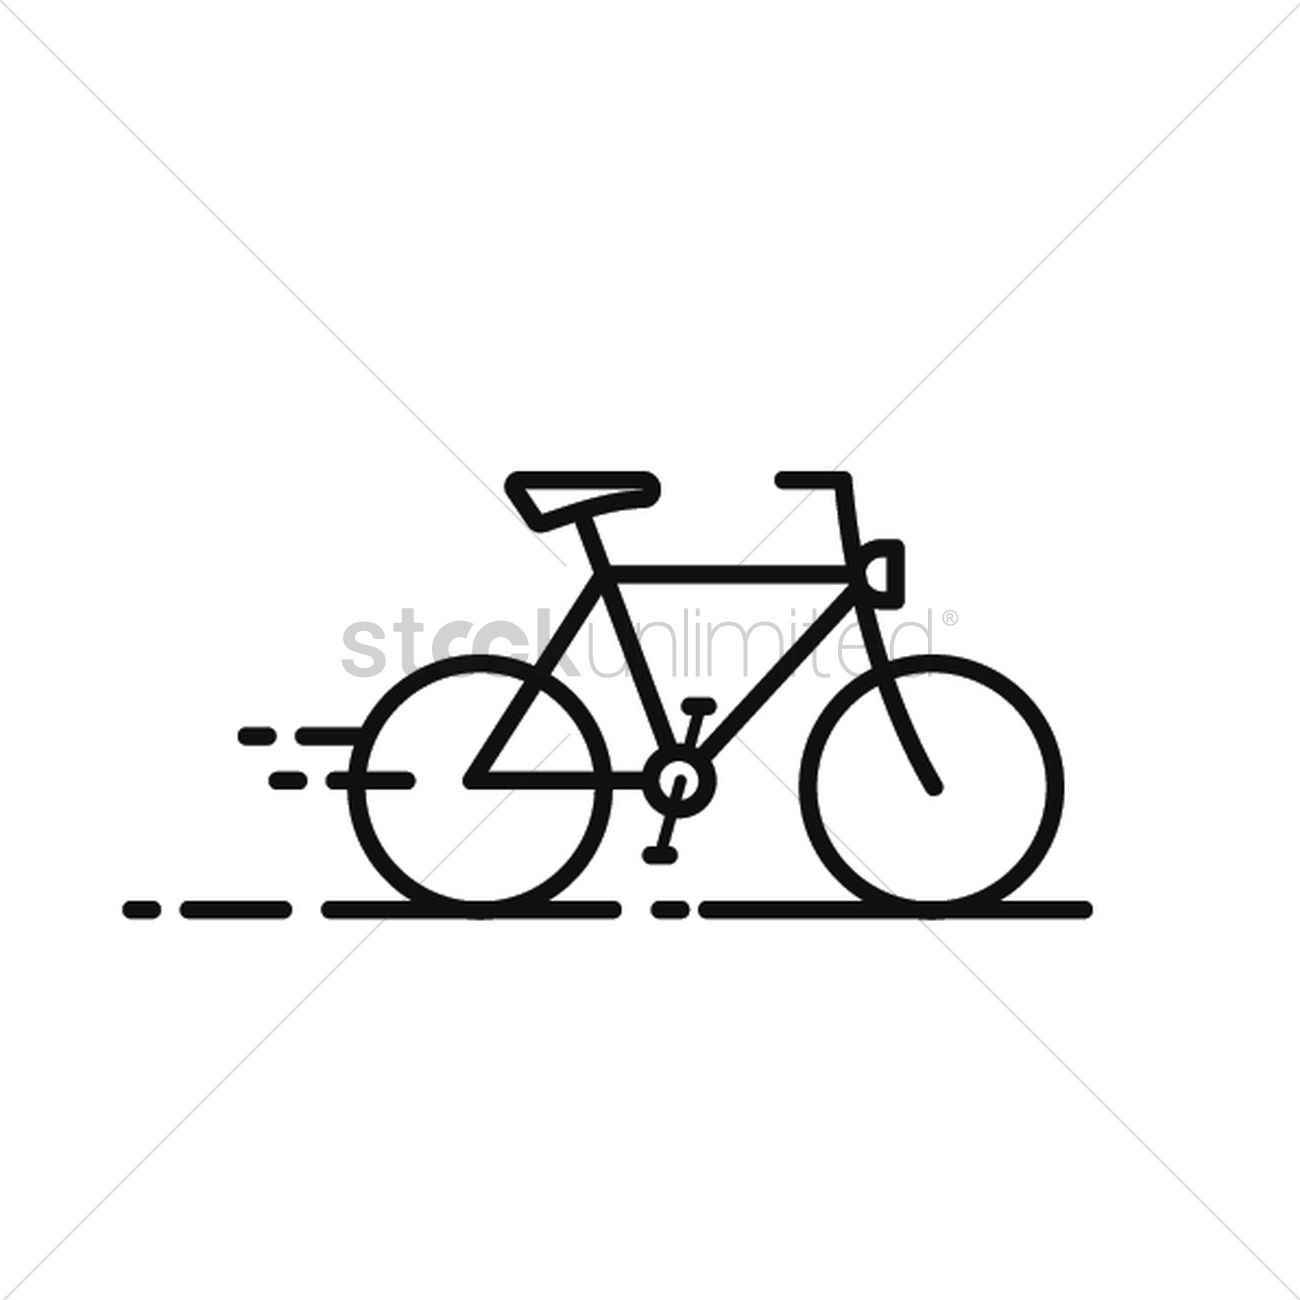 1300x1300 Cross Country Bicycle Vector Image